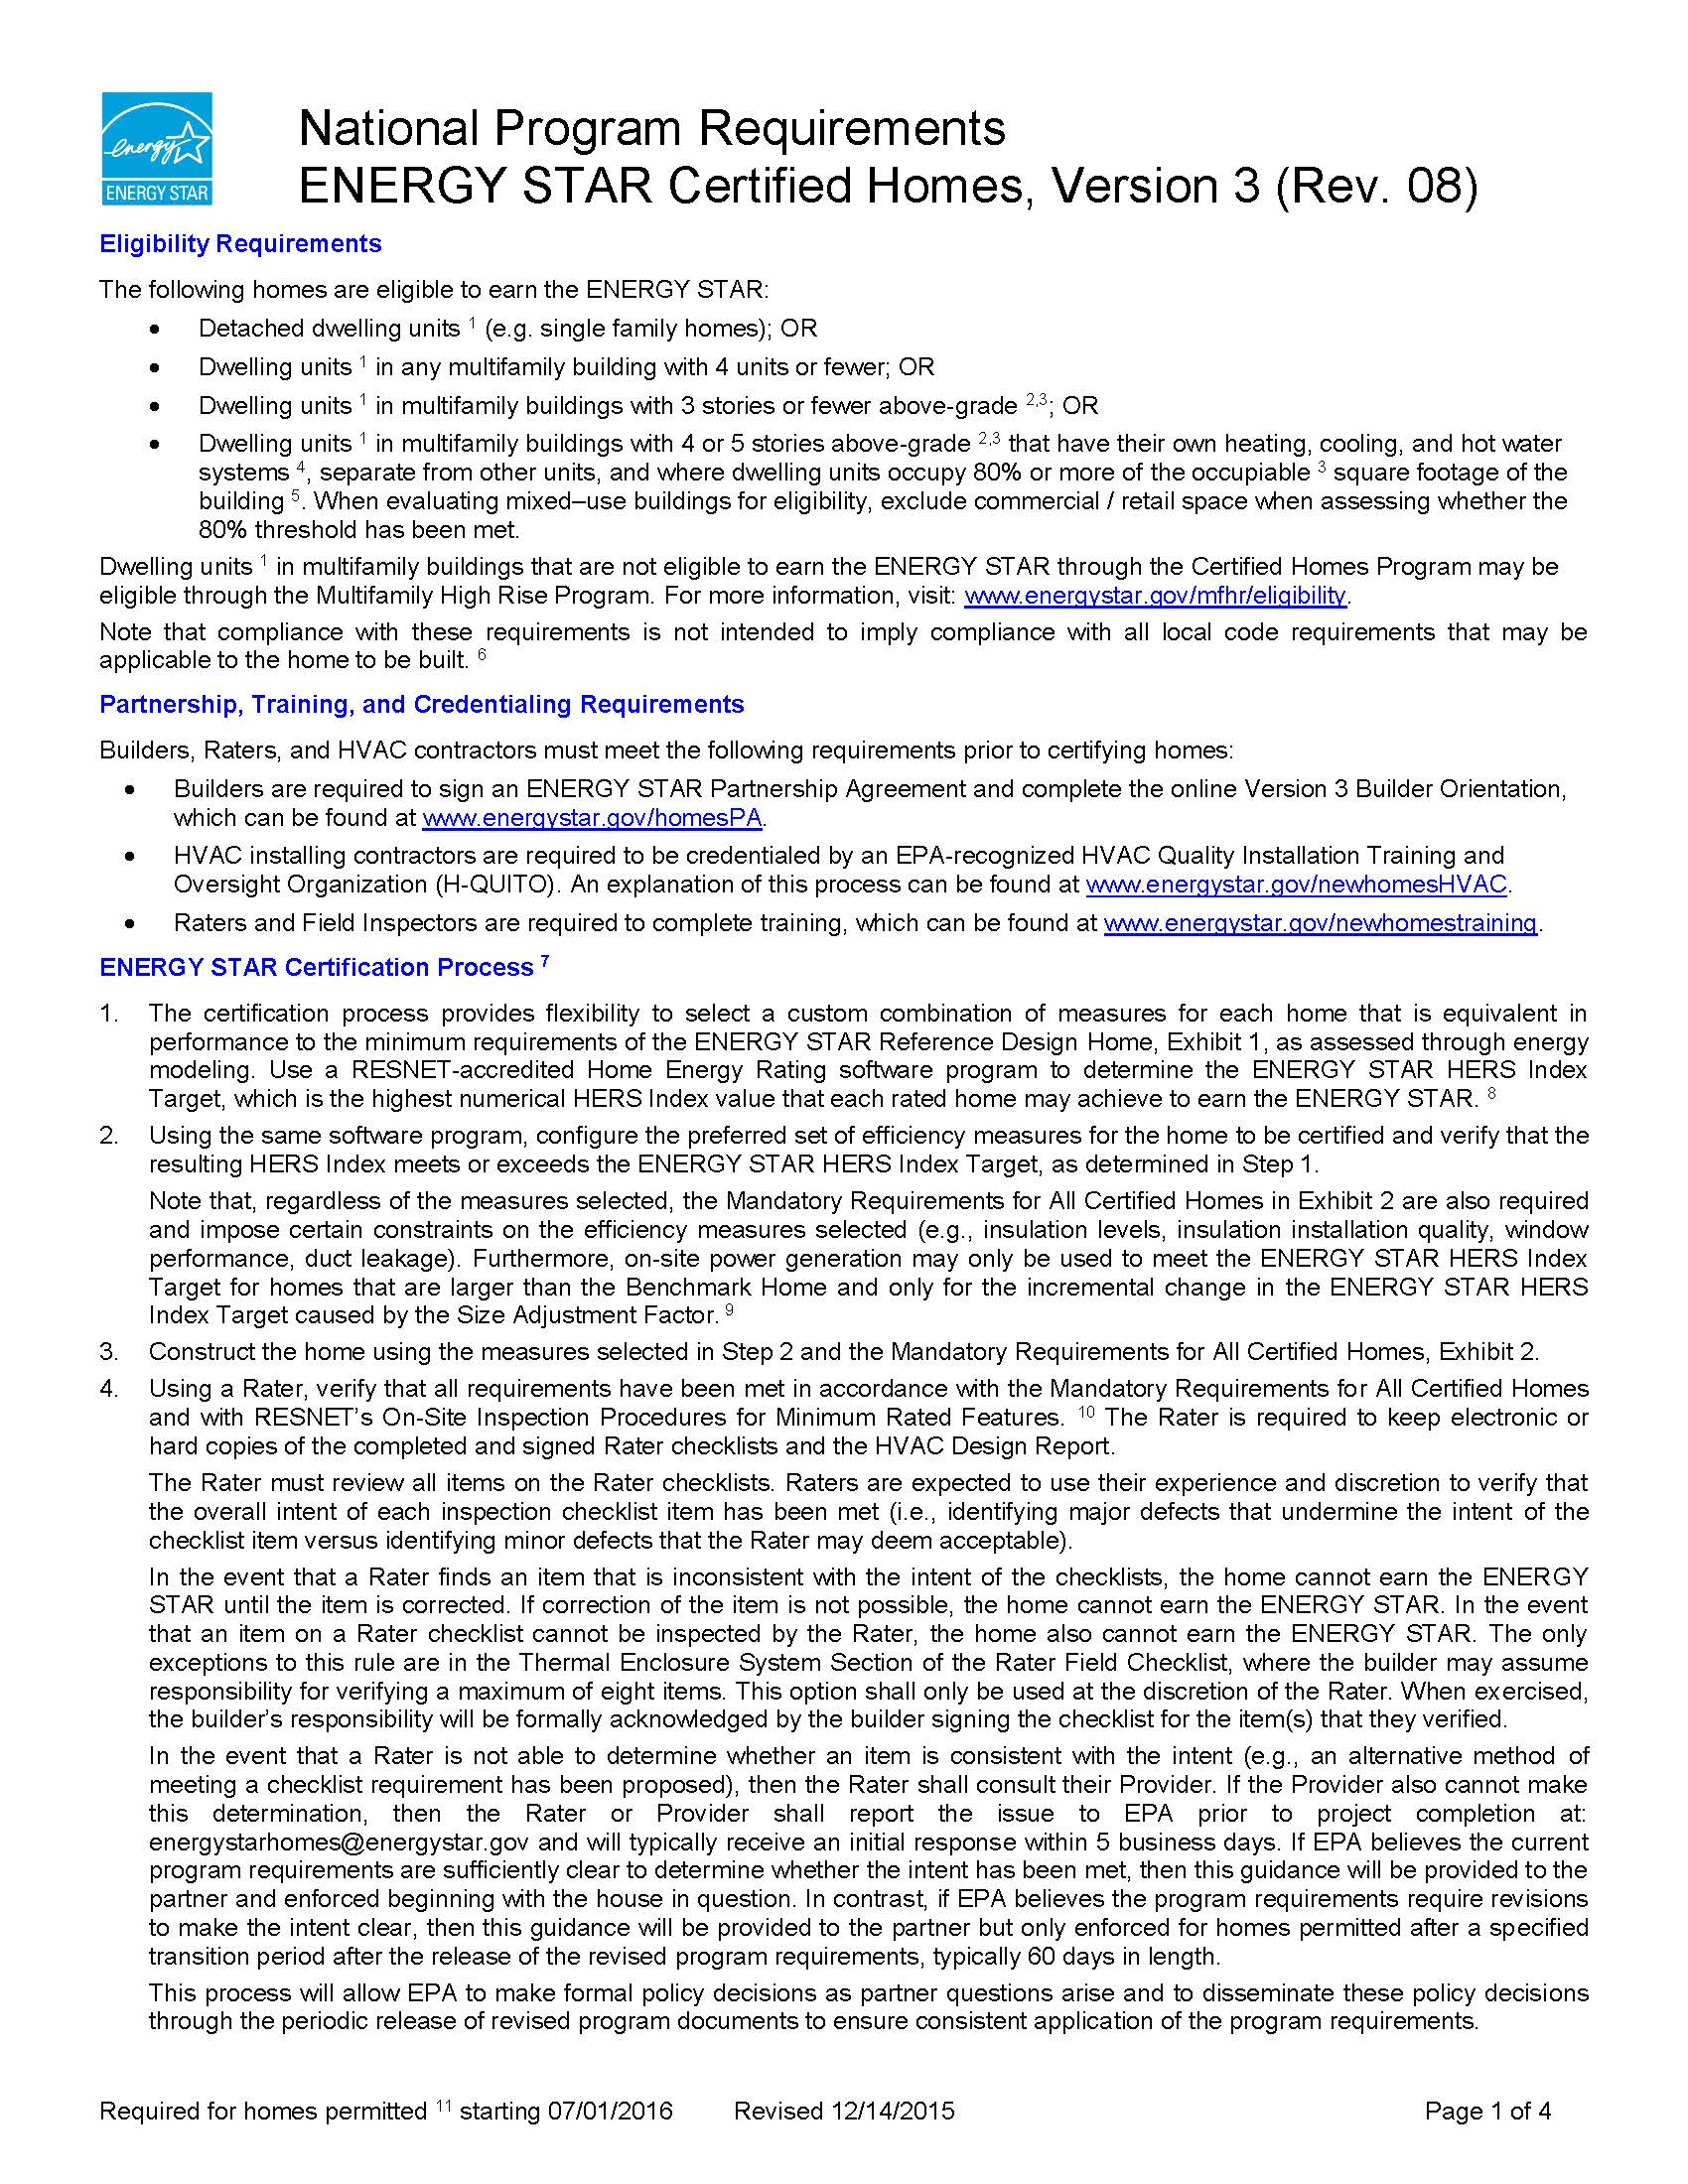 Page 1 of ENERGY STAR Homes National Program Requirements